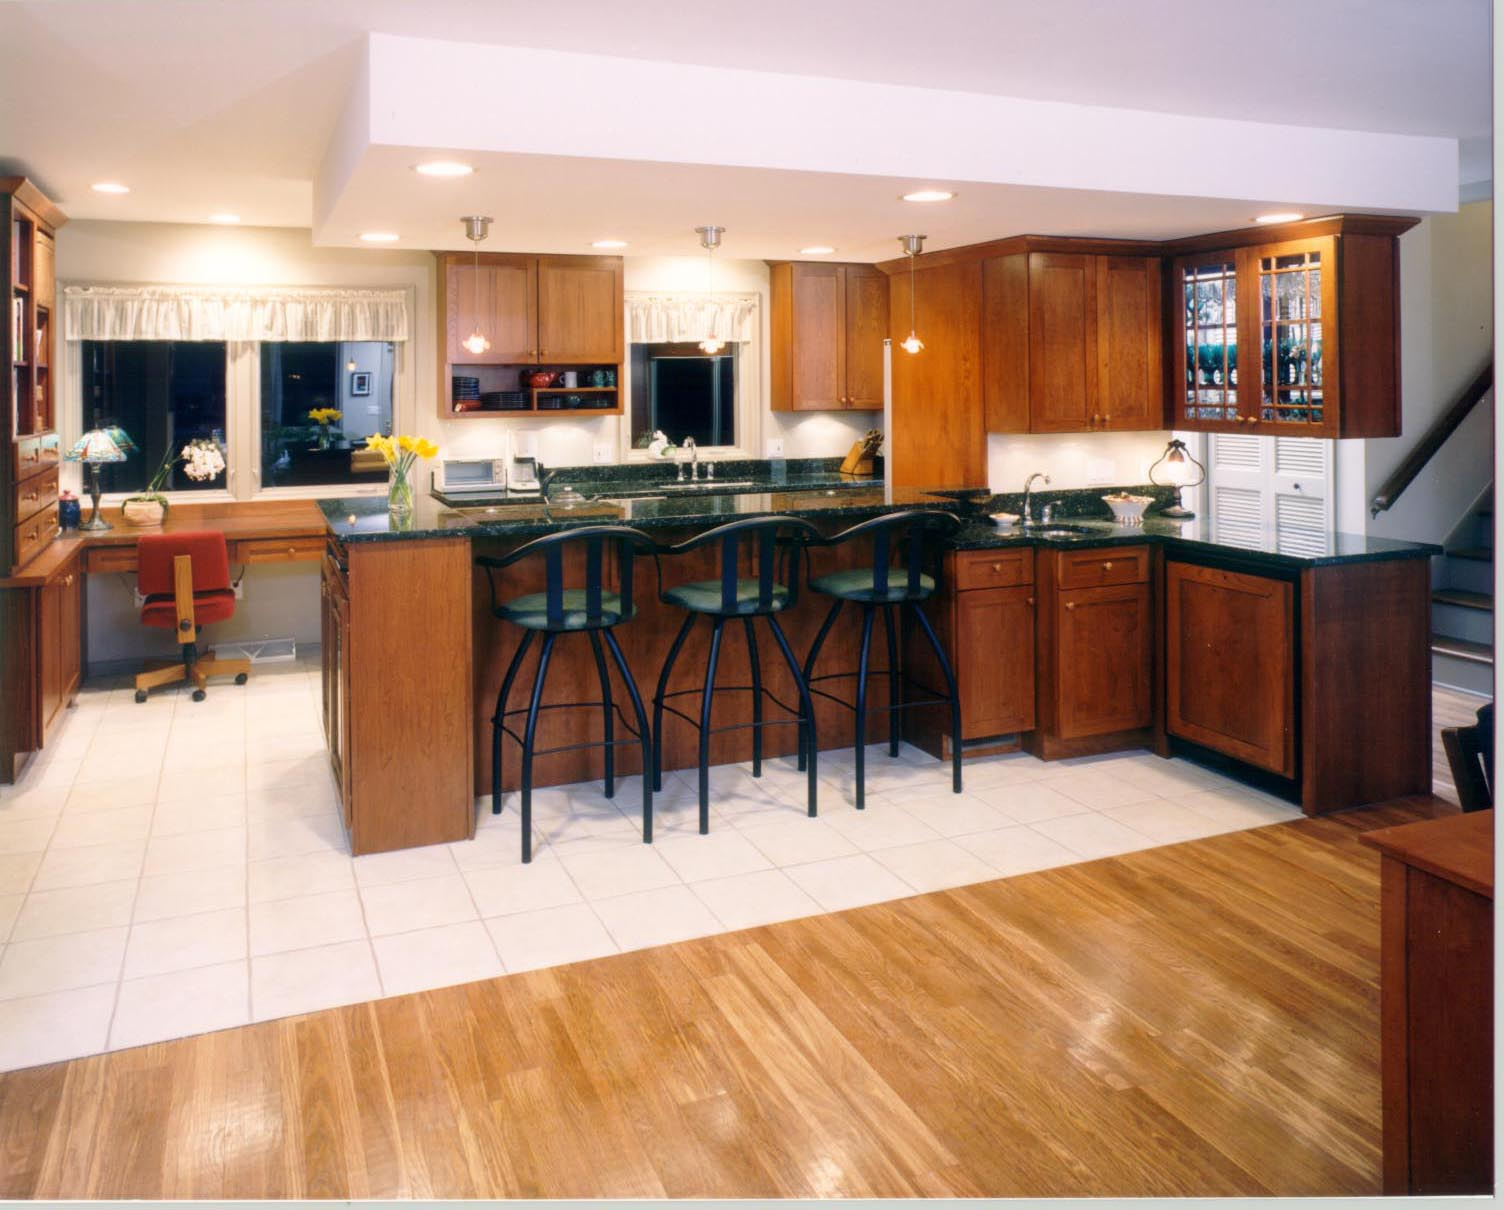 Captivating Wooden Kitchen Bar Ideas With Black Chair Bright Light